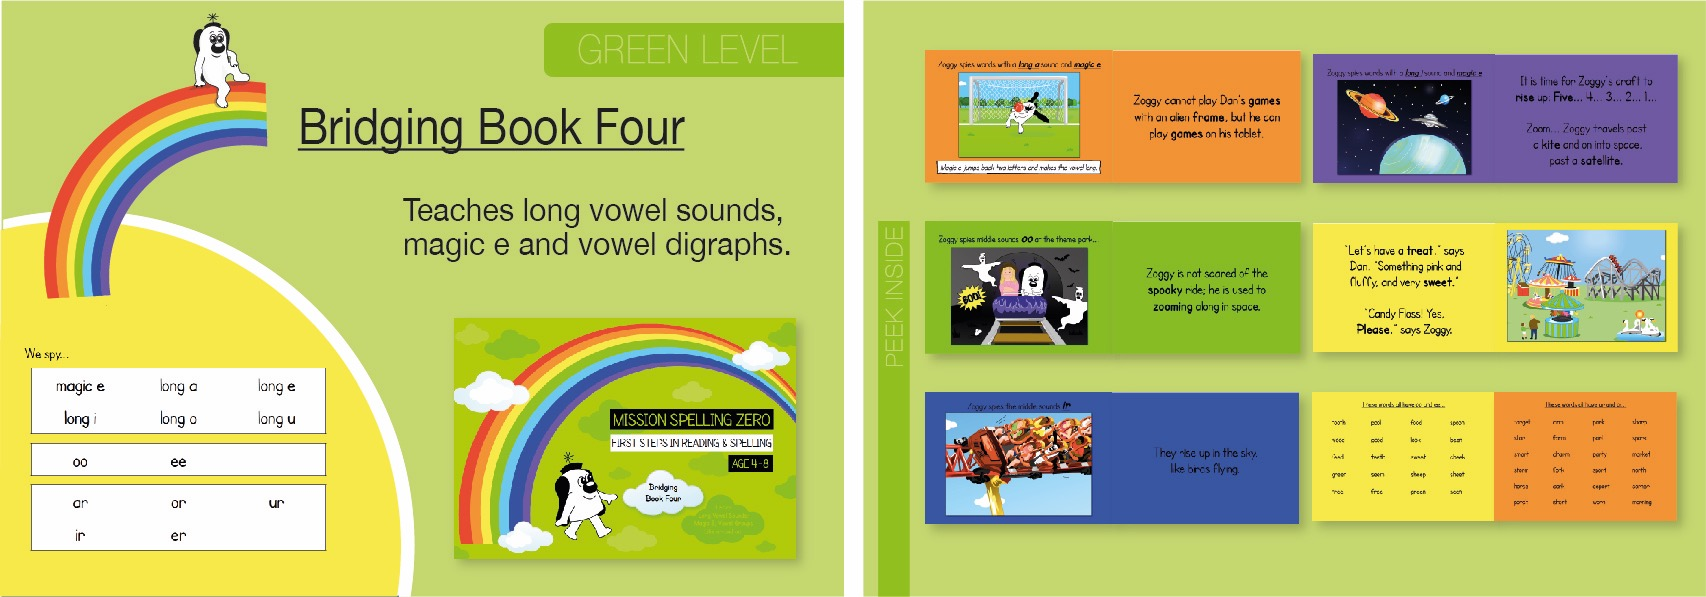 Bridging Book 4 - Introduces New Sounds  (Print Edition)